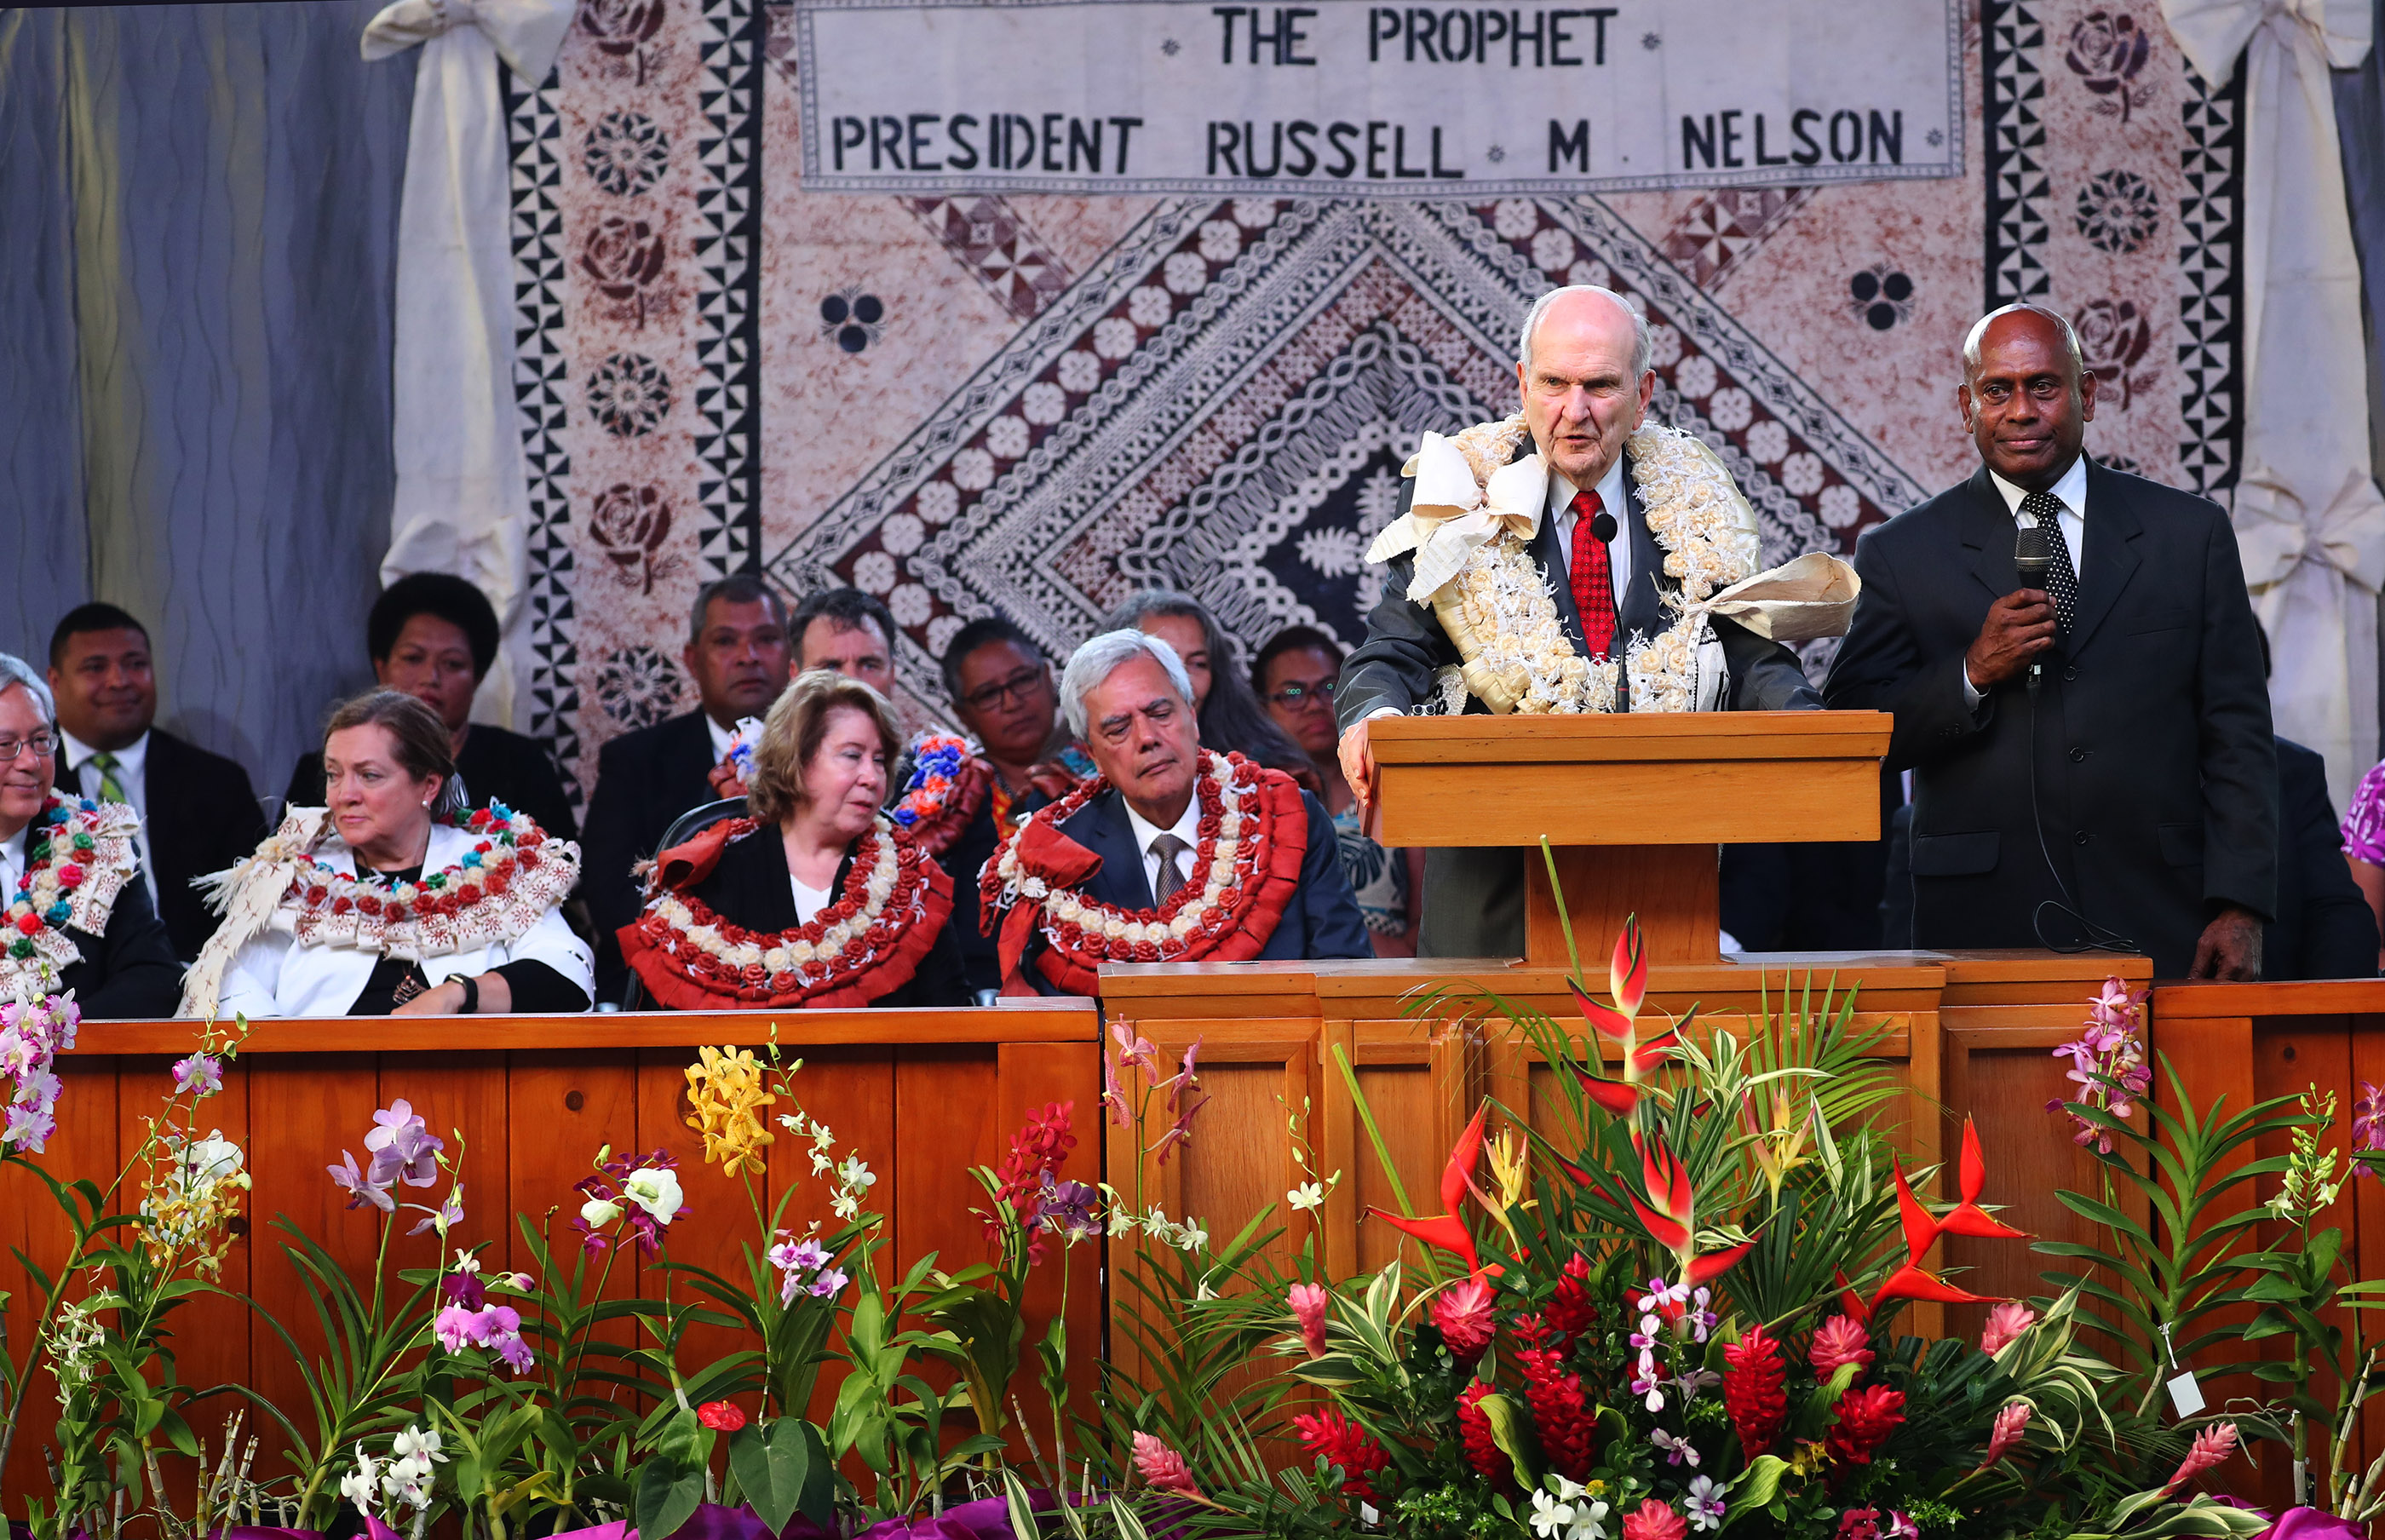 President Russell M. Nelson of The Church of Jesus Christ of Latter-day Saints speaks during a devotional in Nausori, Fiji on May 22, 2019.